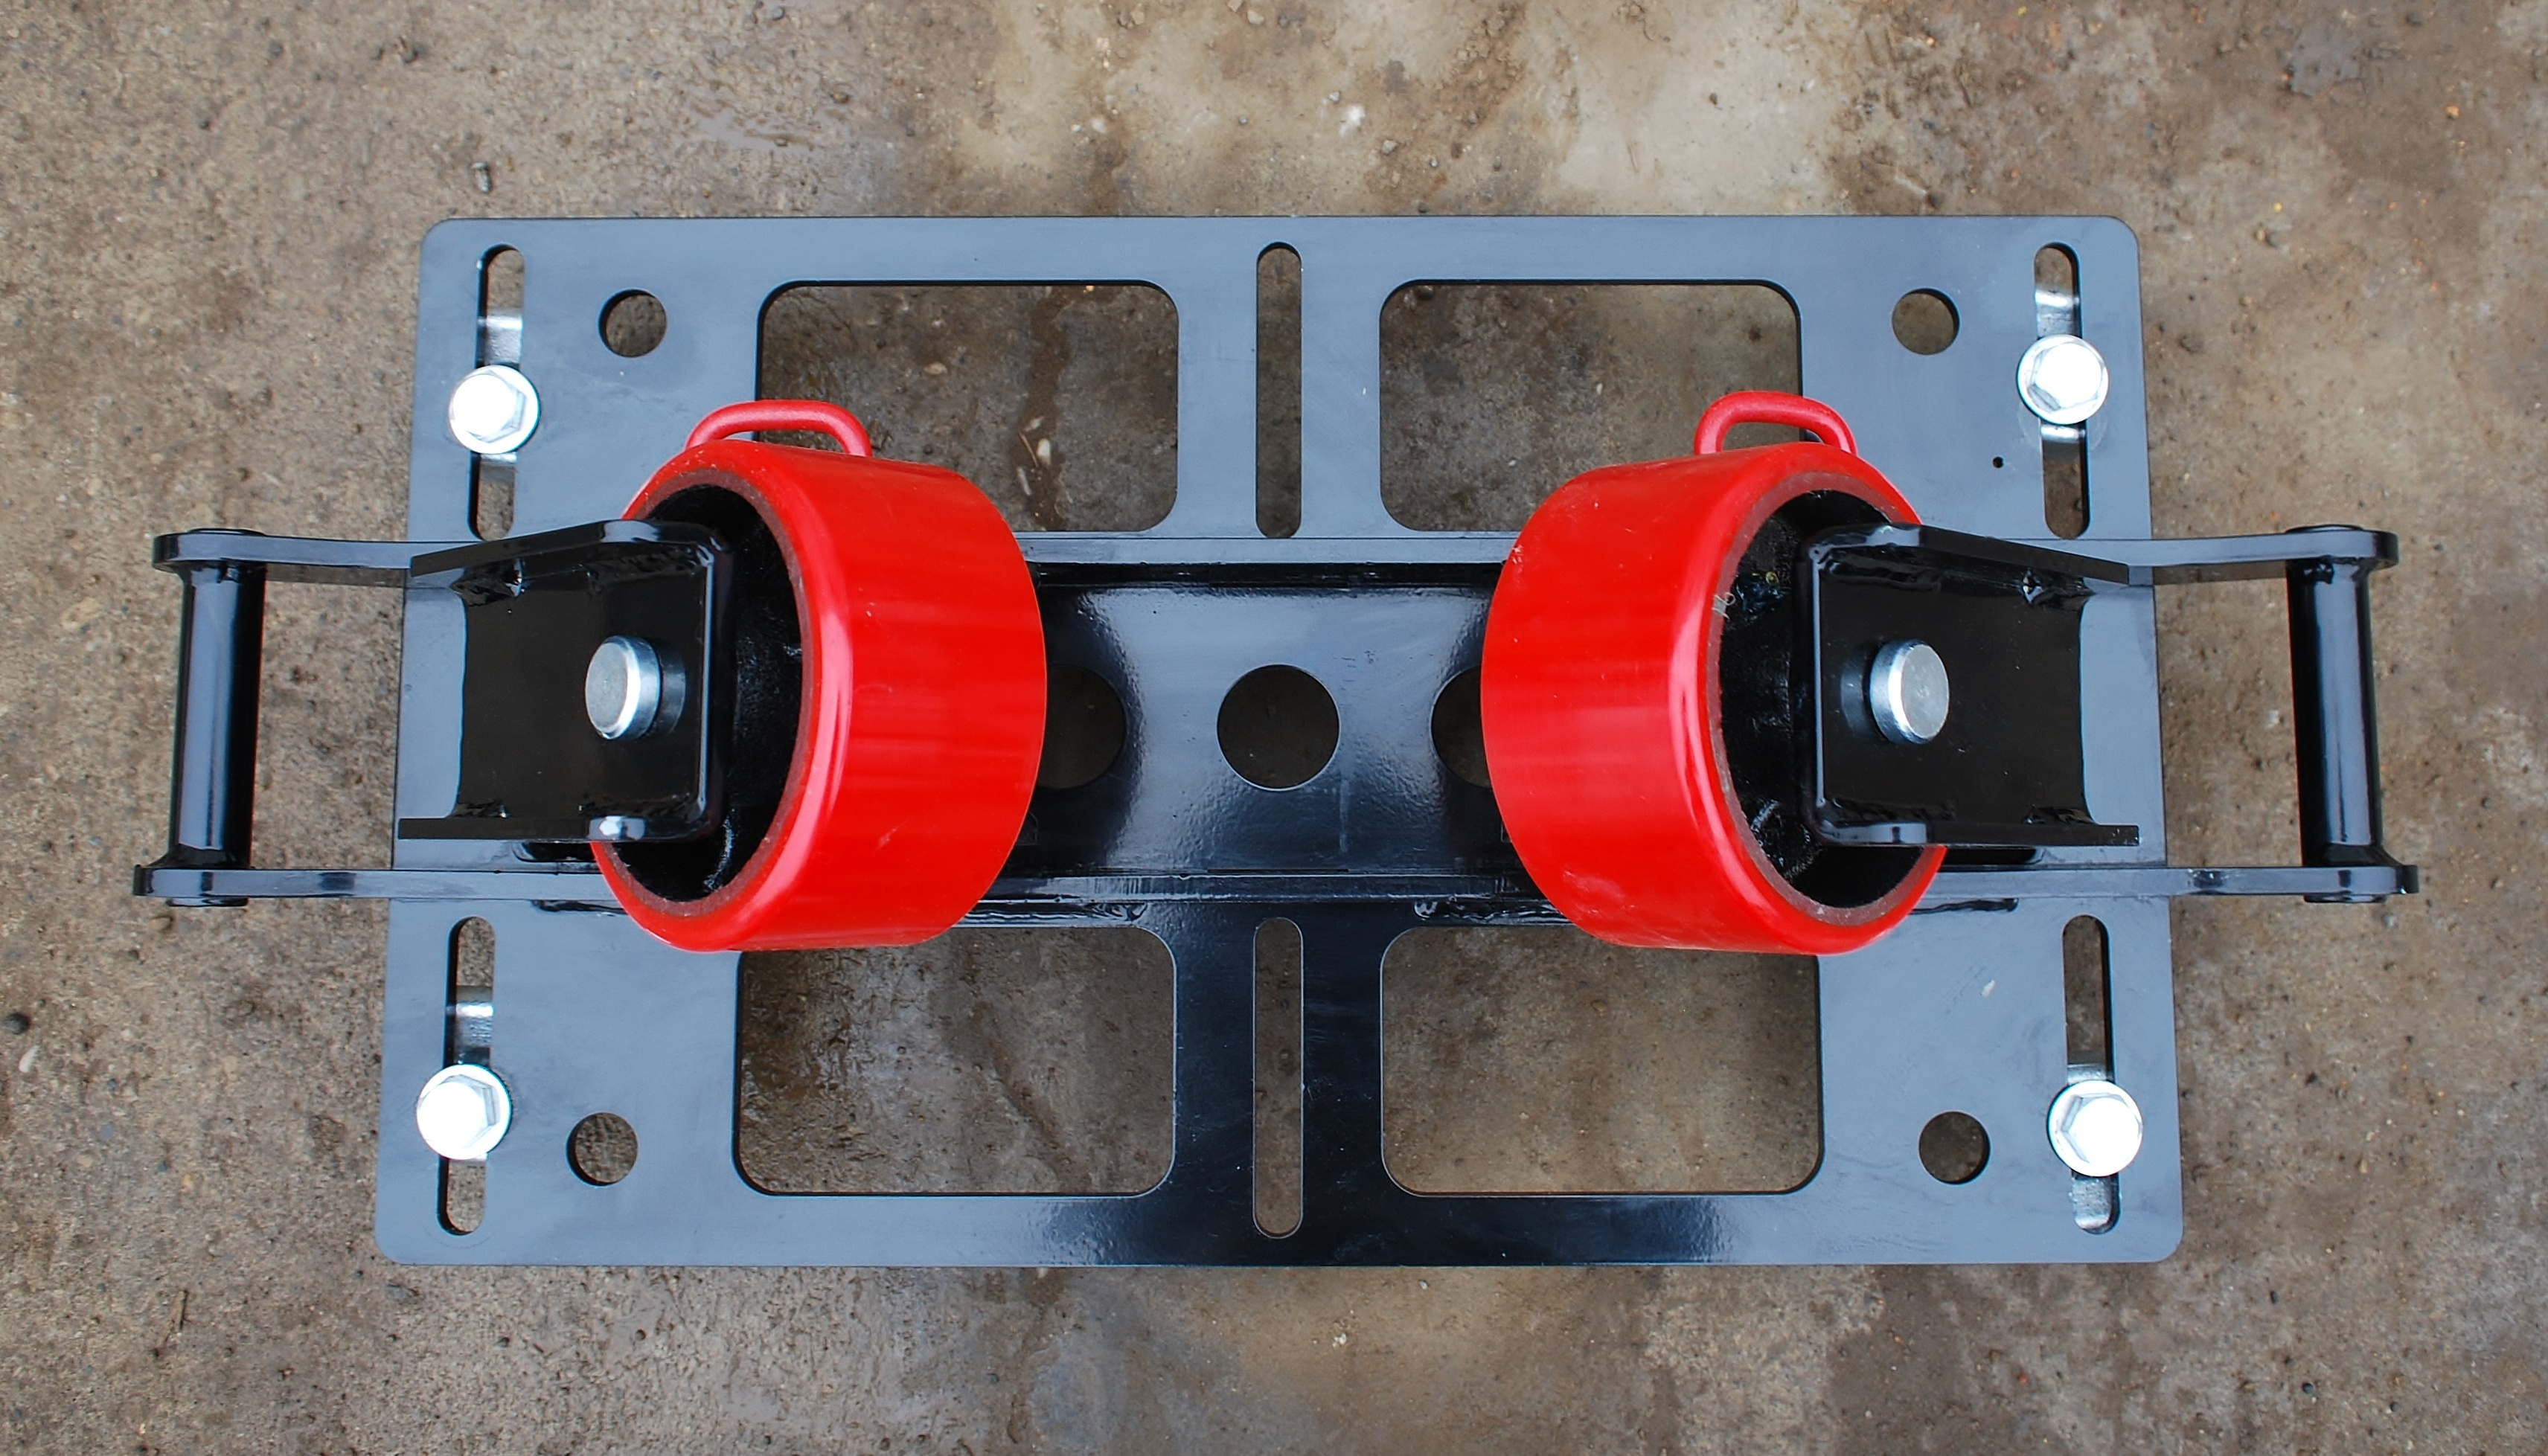 pipe rack rigging rollers for sale (2-ton capacity)